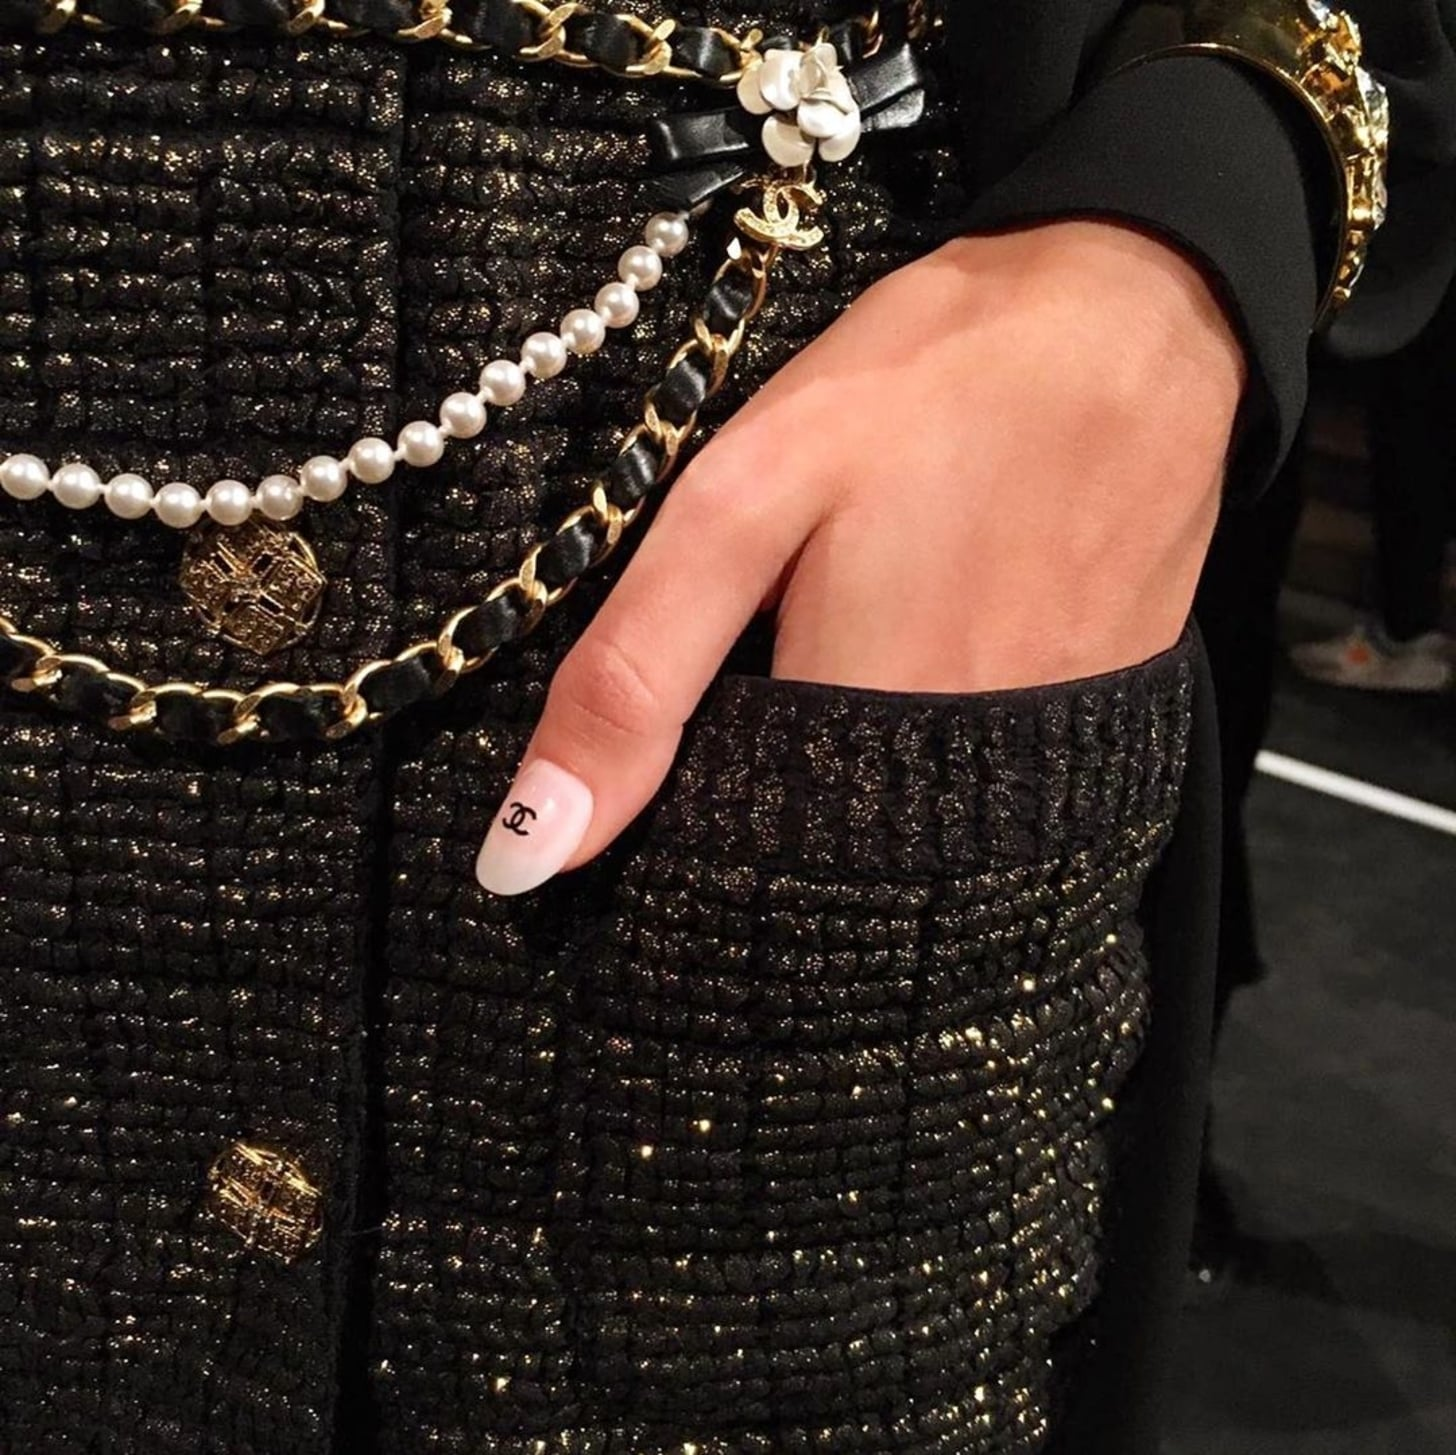 Chanel Double C Nail Stickers at the Metiers D'Art Show | POPSUGAR Beauty Australia